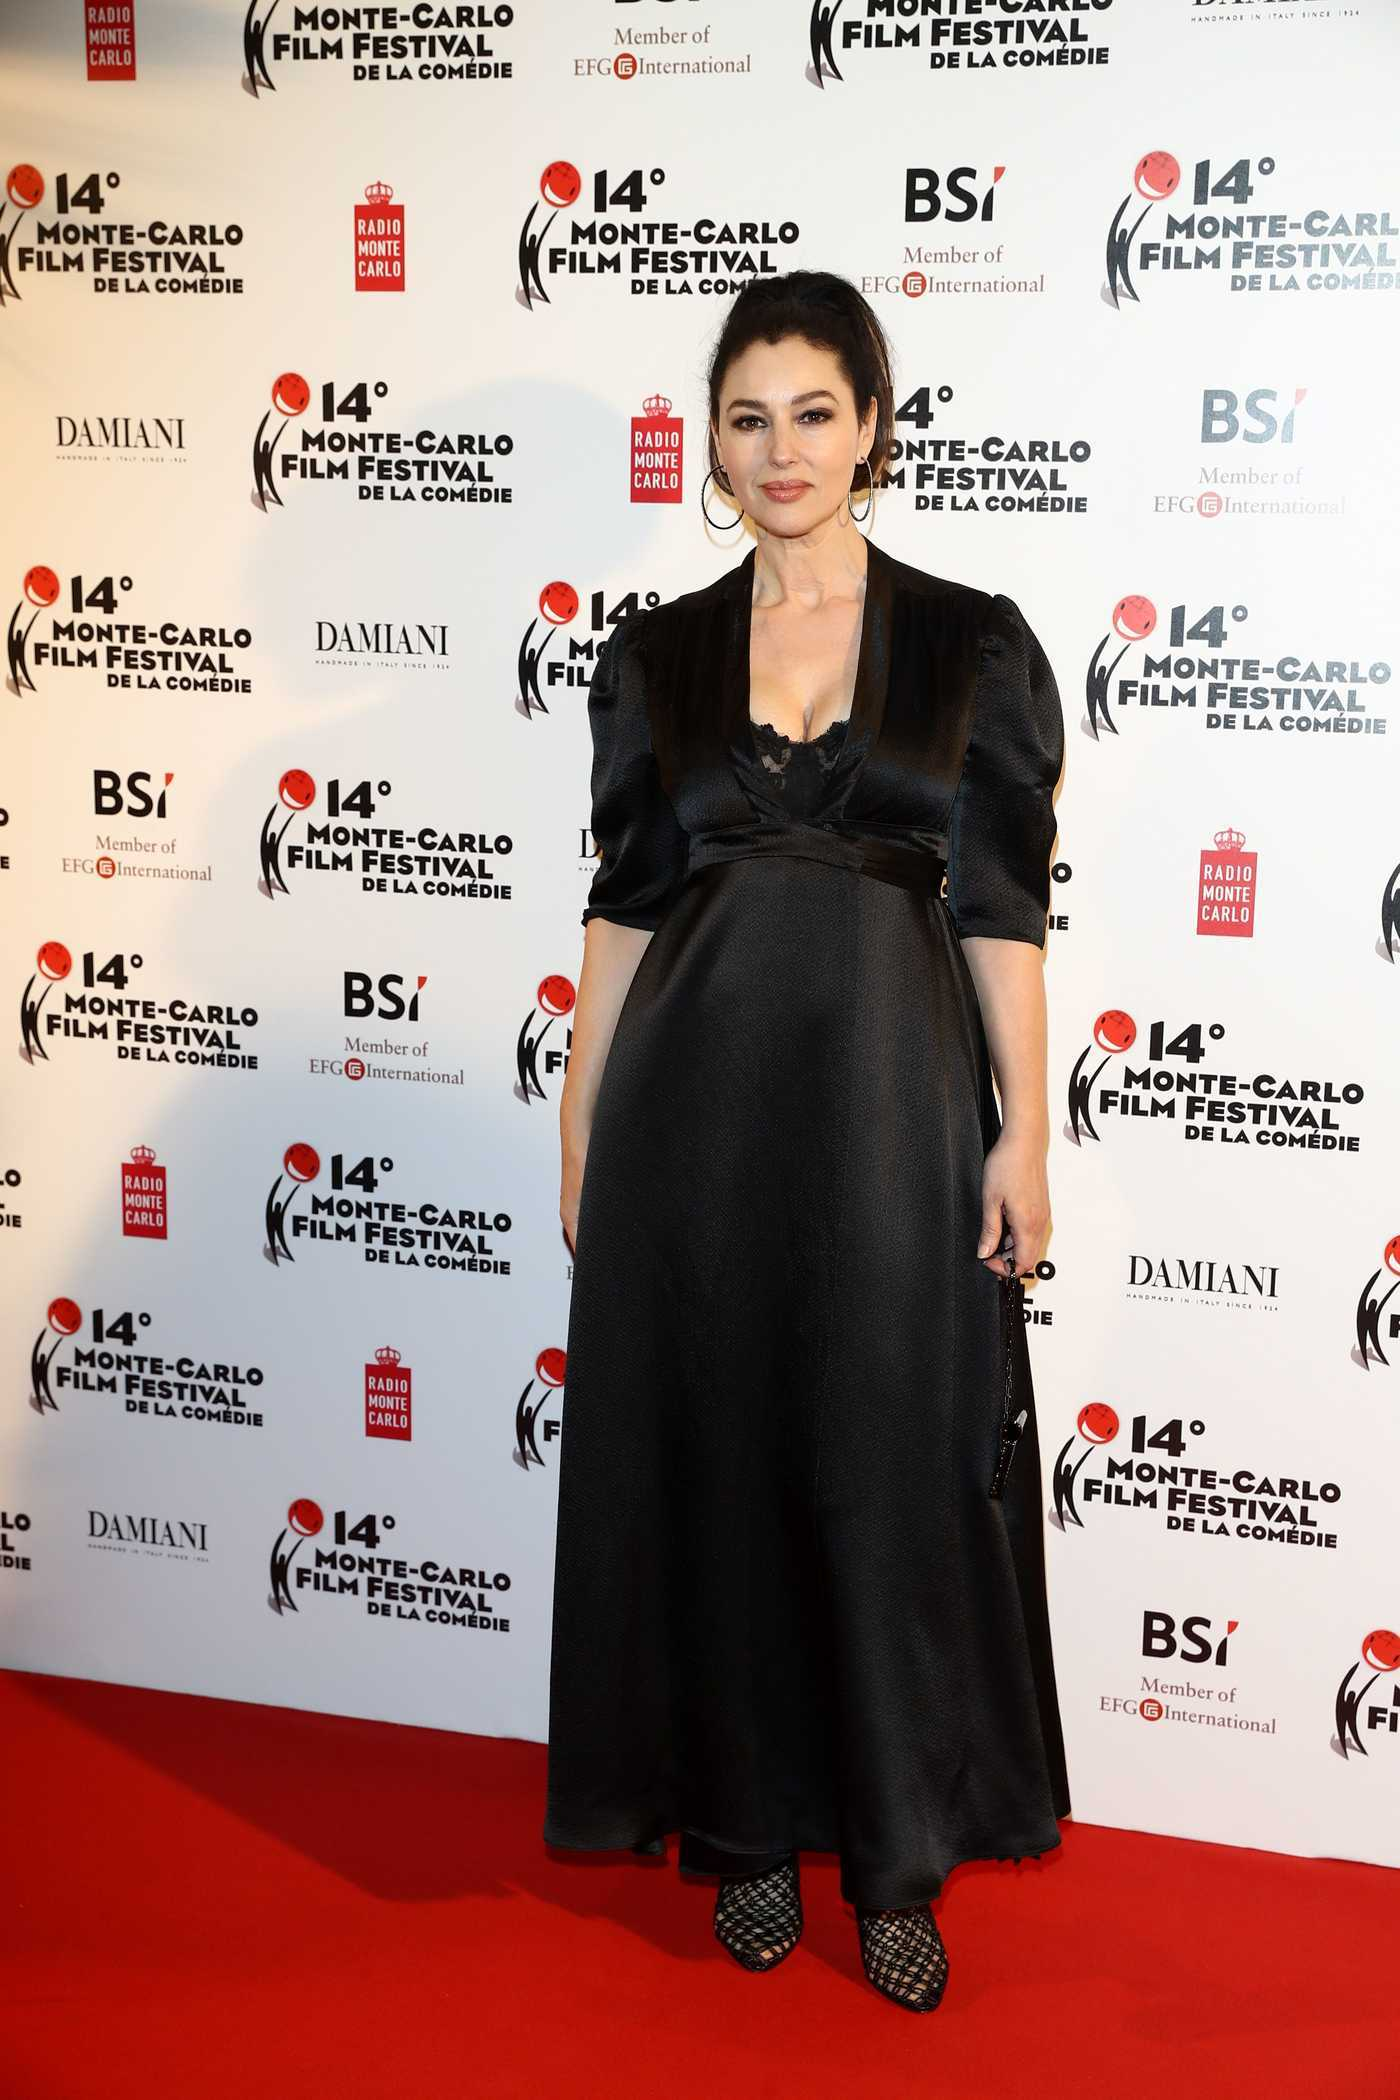 Monica Bellucci at the Monte Carlo Film Festival of the Comedy Gala Dinner 03/05/2017